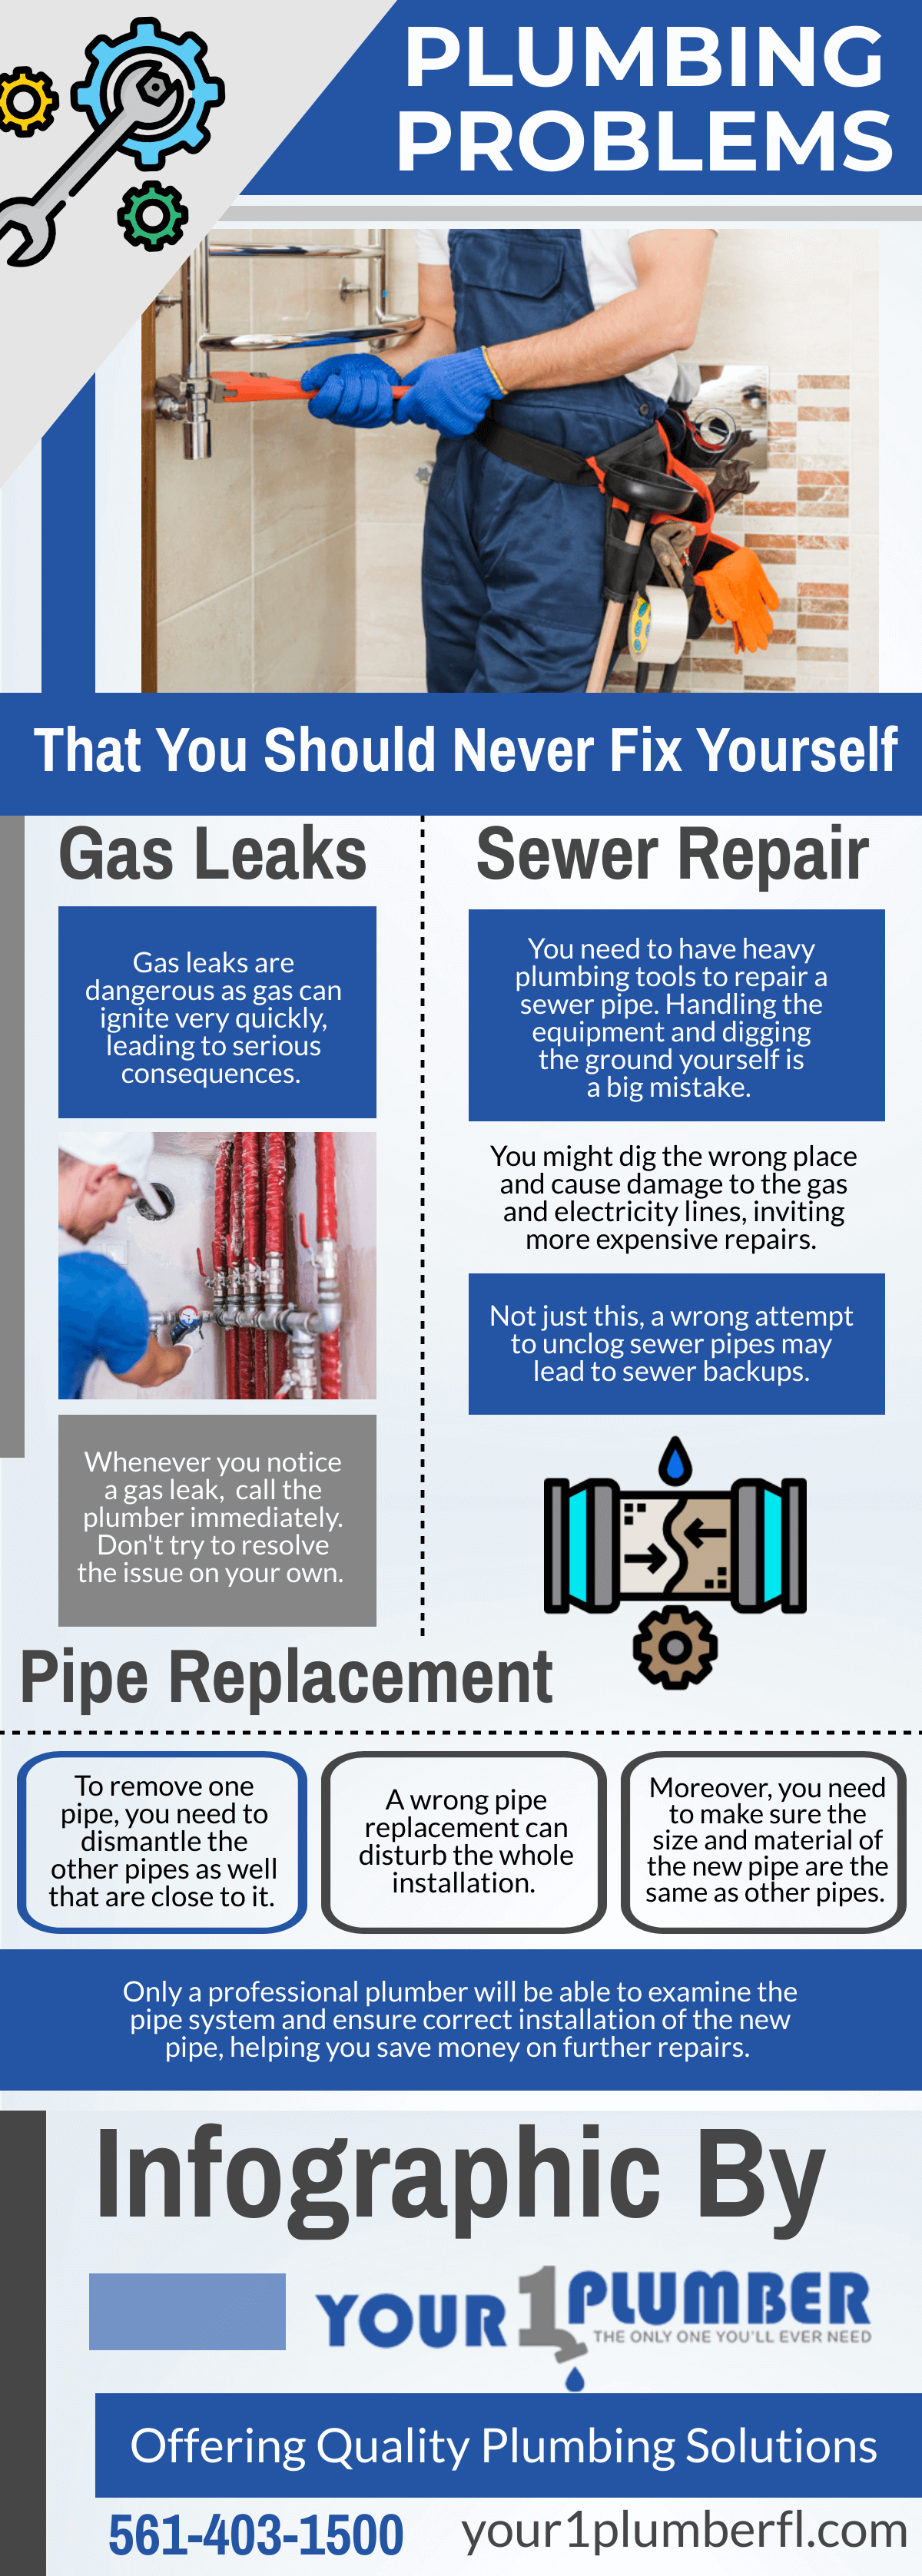 plumbing-problems-that-you-should-never-fix-yourself